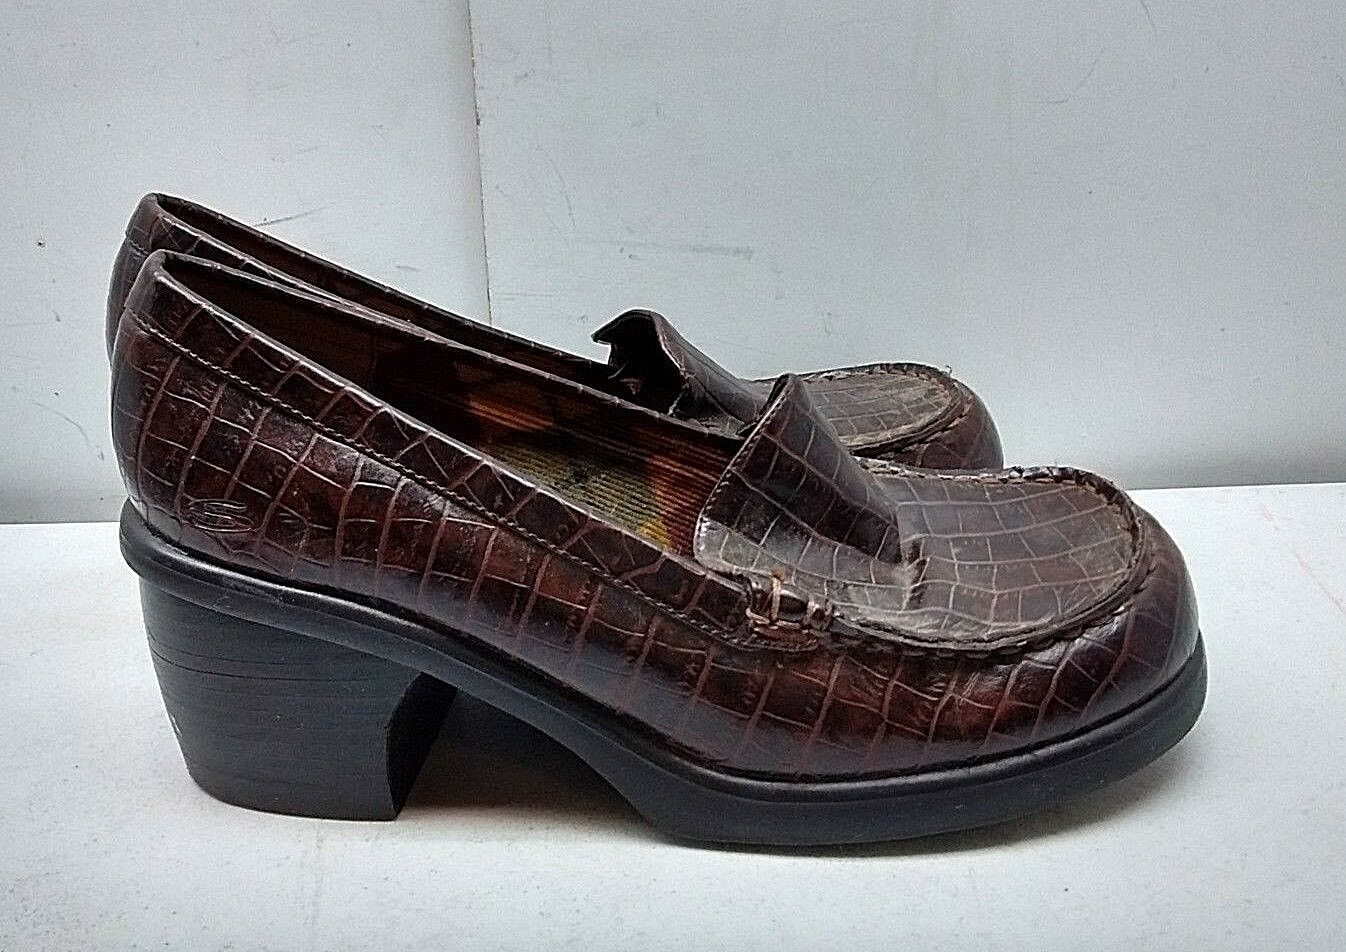 Skechers Somethin' Else Women Brown Synthetic Slip On Platform Clogs shoes 8M 39